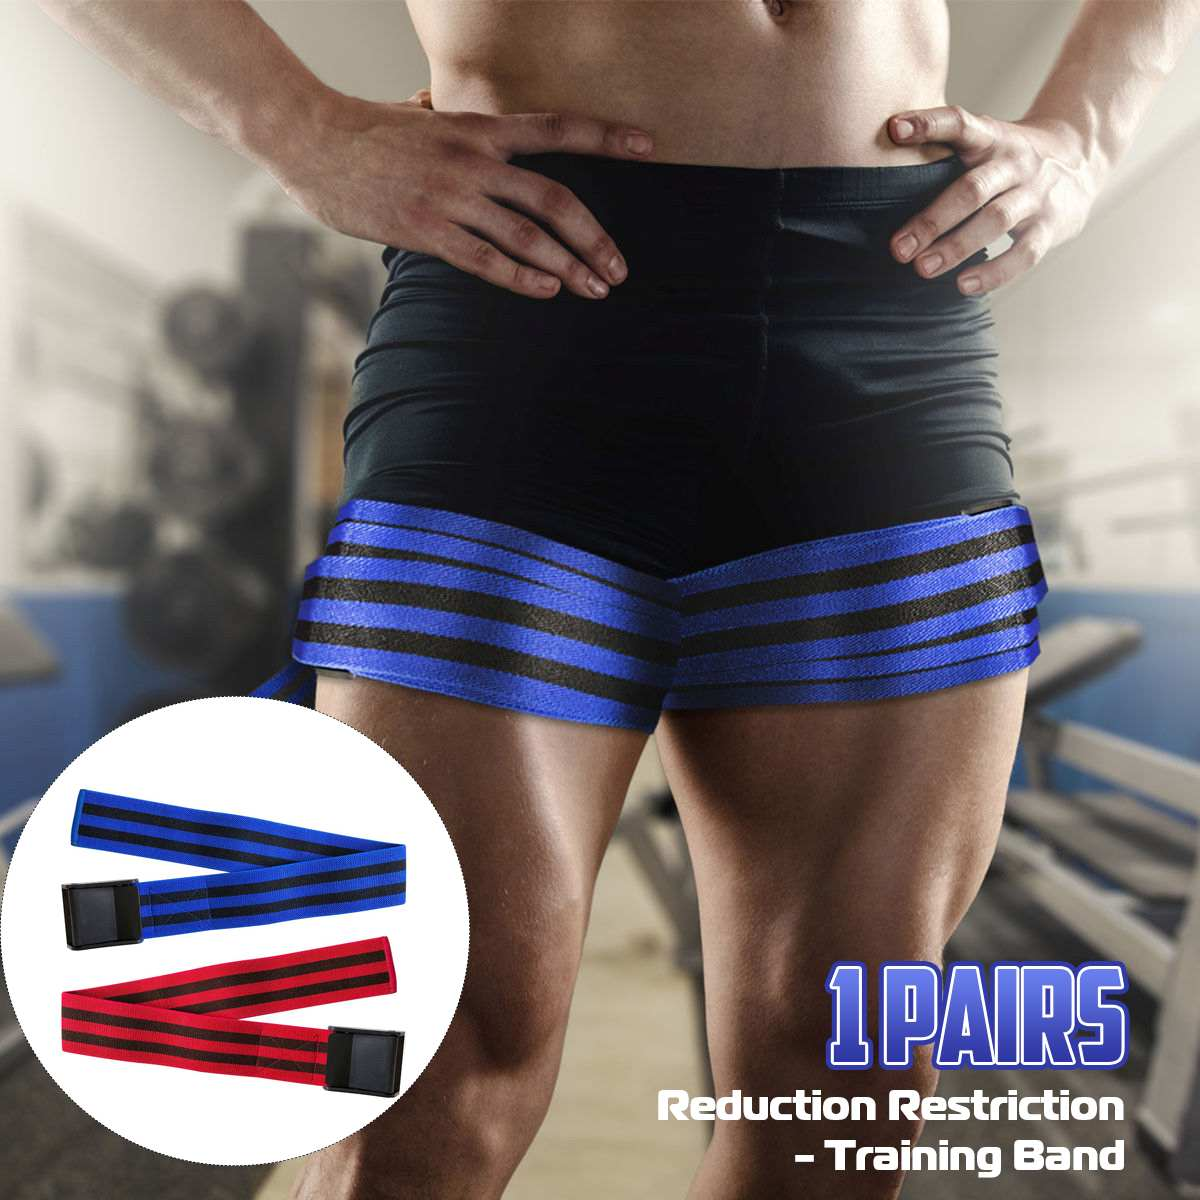 Fitness Occlusion Training Bands Blood Flow Blocking Training Equipment For Gym With Arm Or Leg Traps Weightlifting Exercise